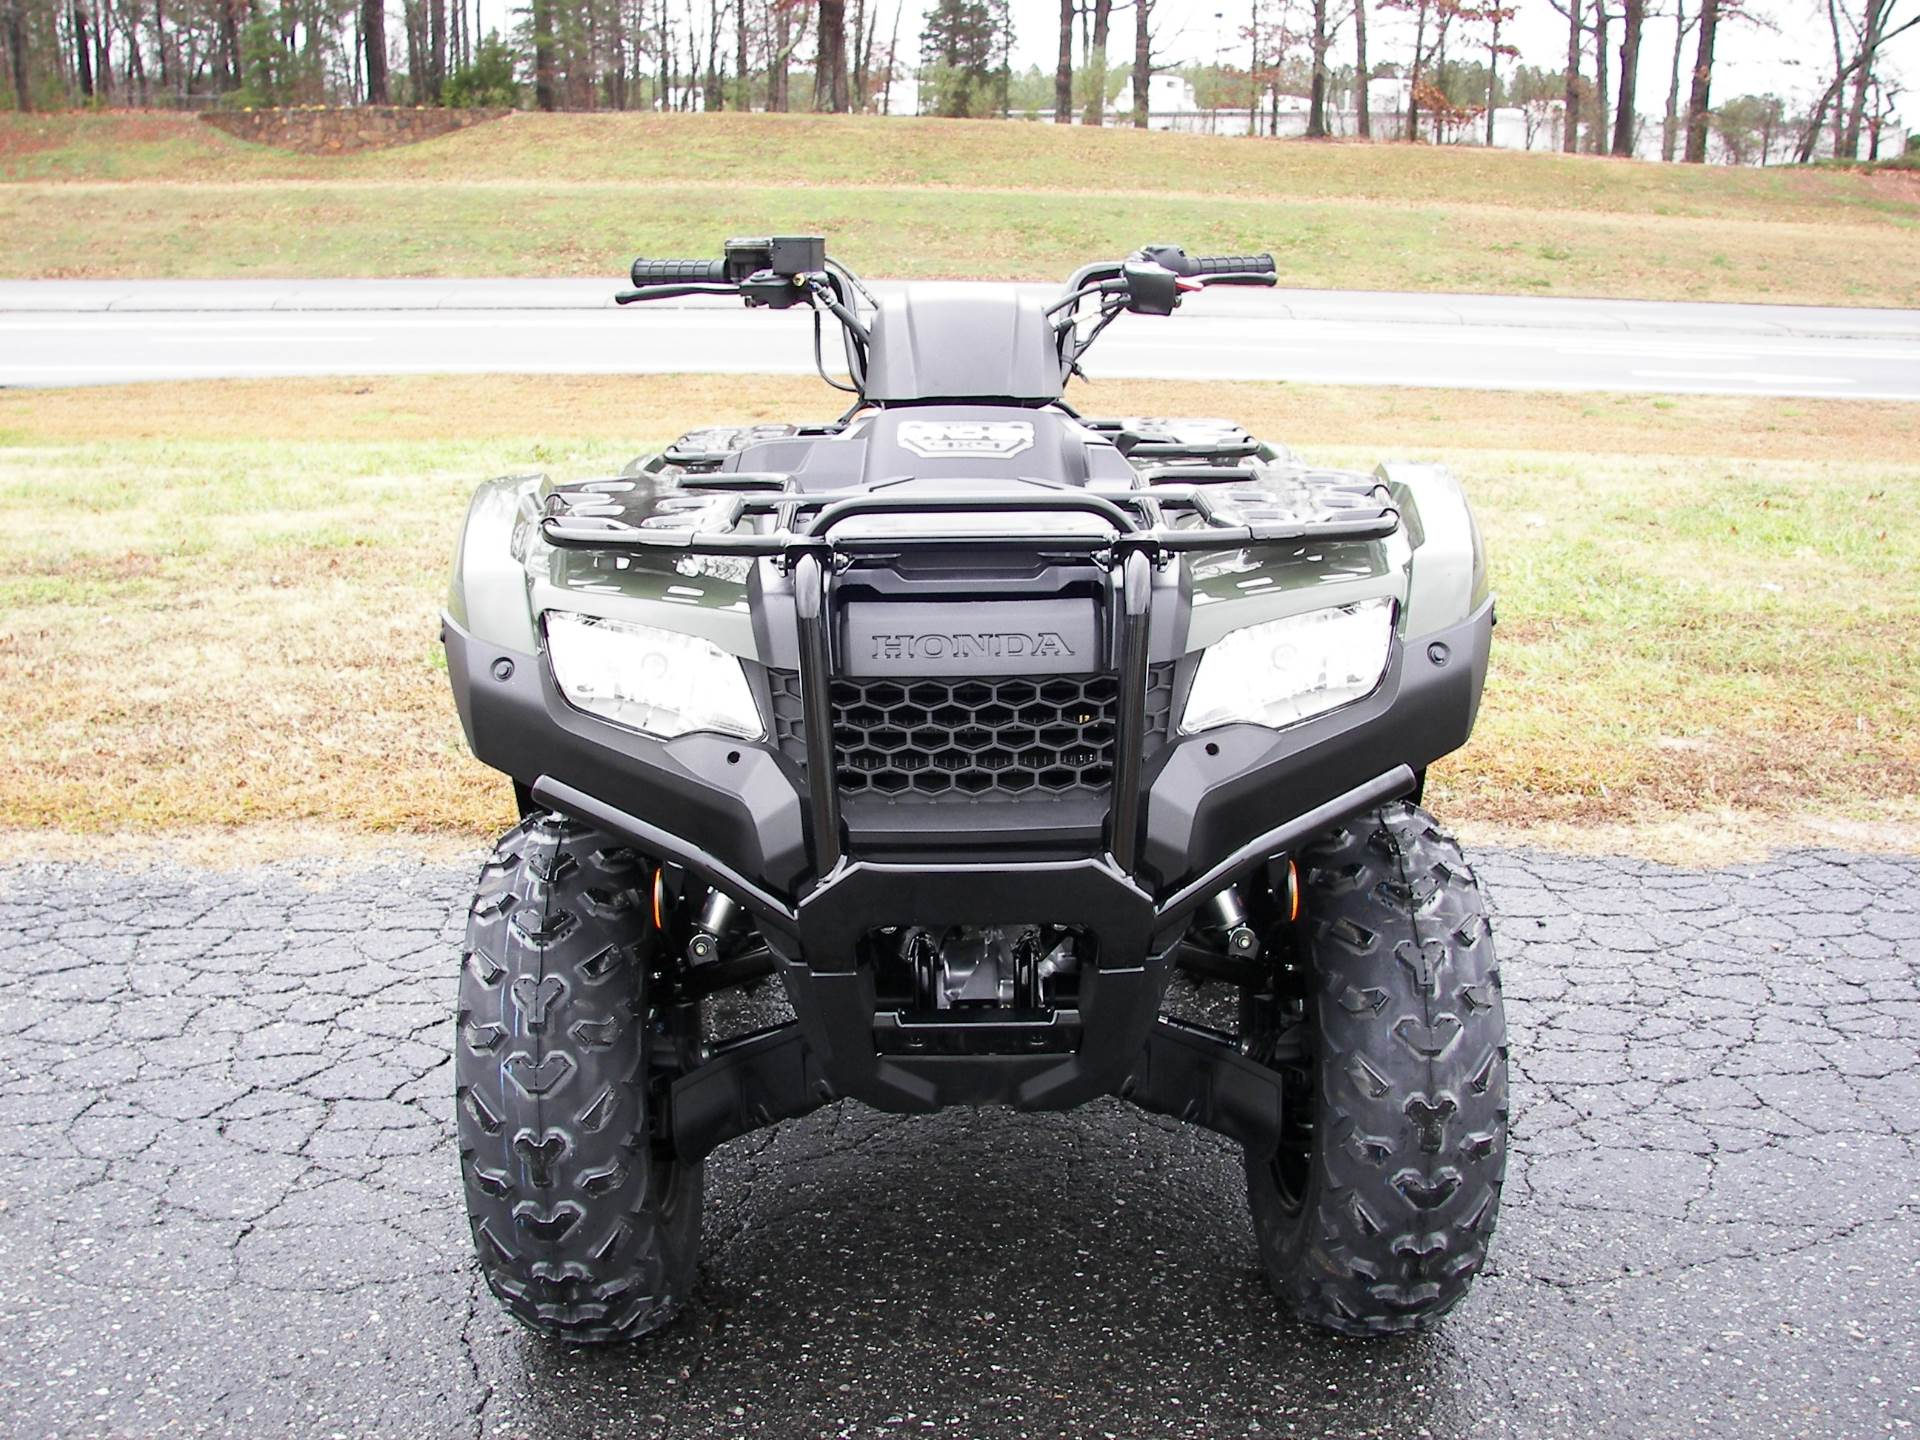 2020 Honda FourTrax Rancher 4x4 EPS in Shelby, North Carolina - Photo 5